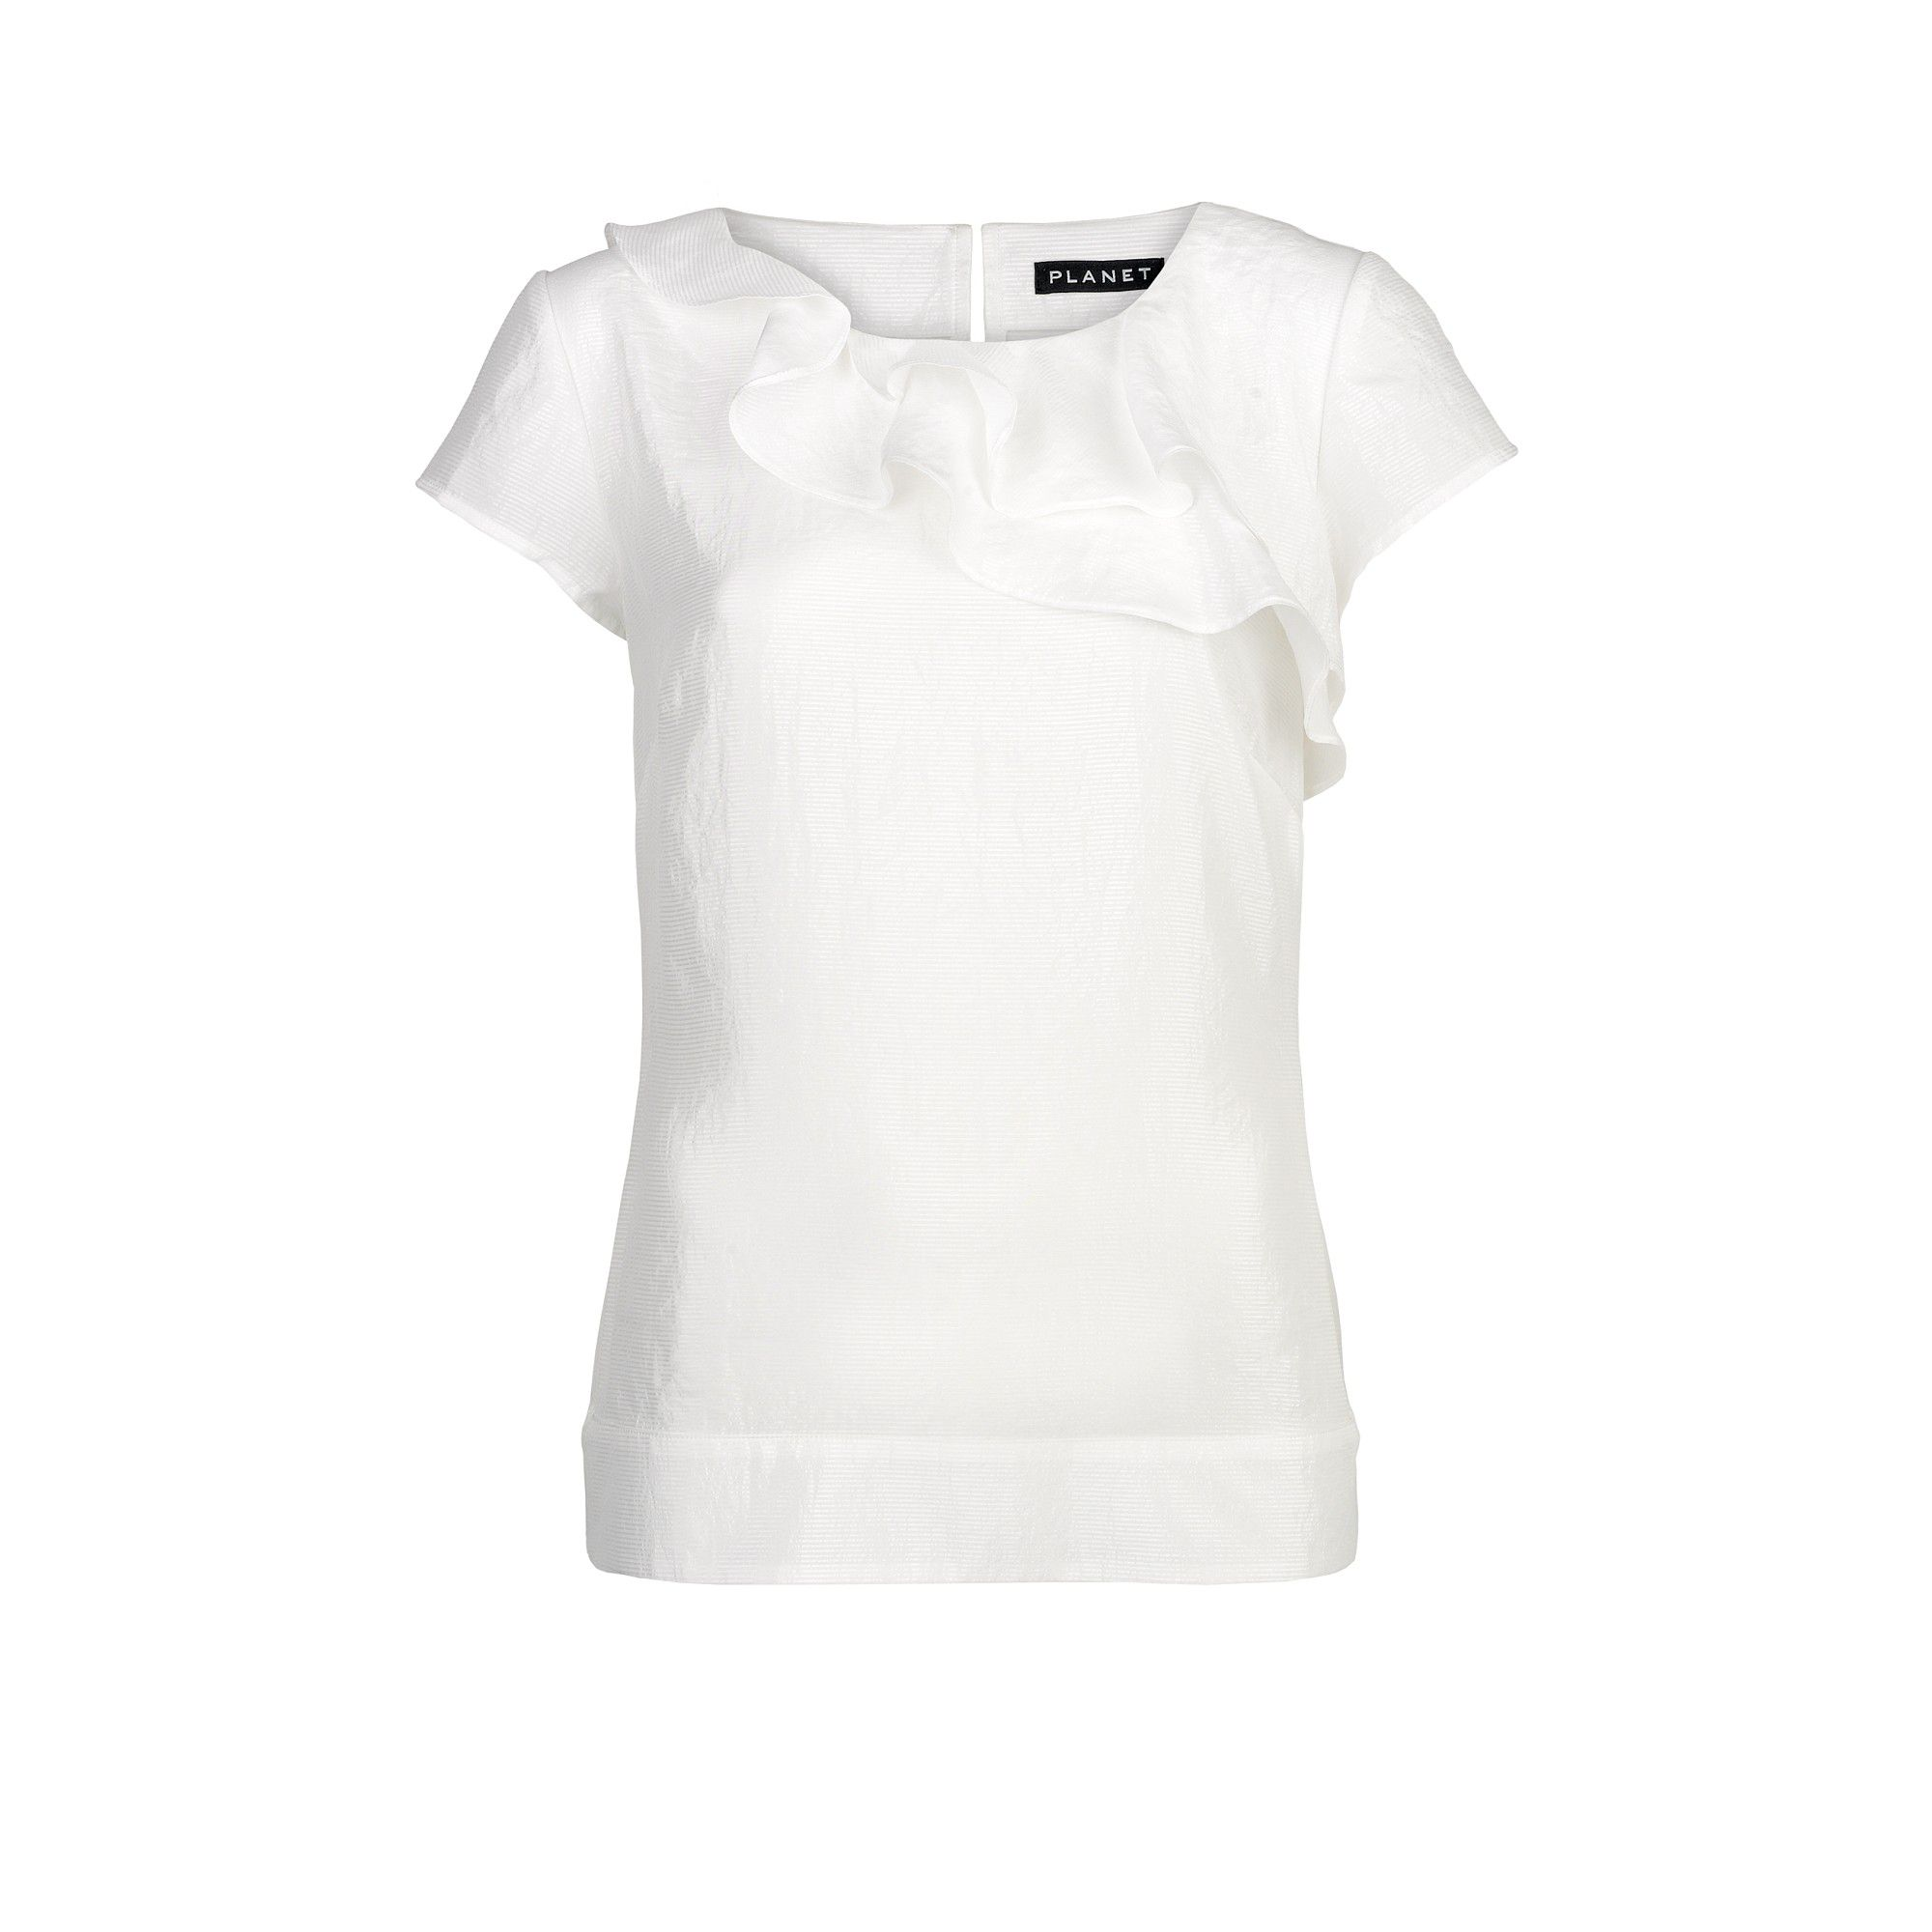 Planet Frill front blouse - Ivory product image